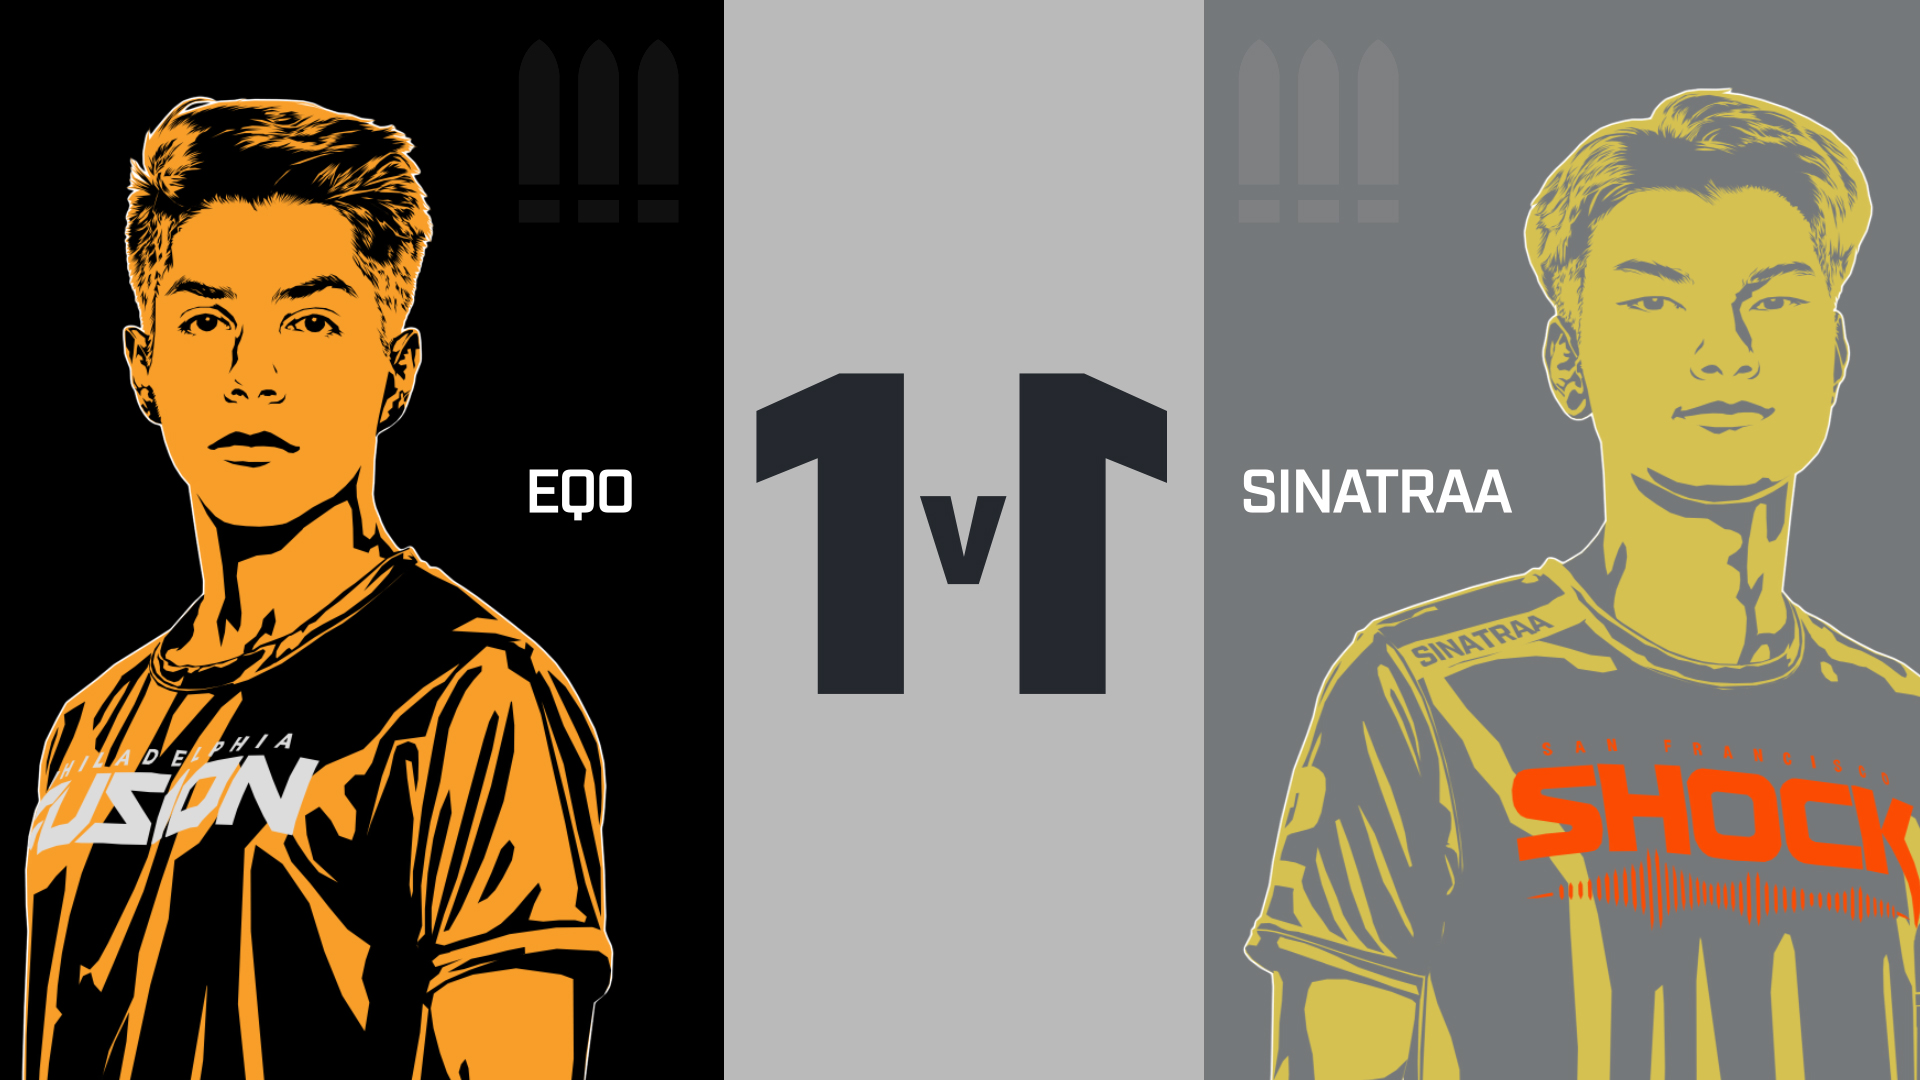 1v1 with EQO and Sinatraa